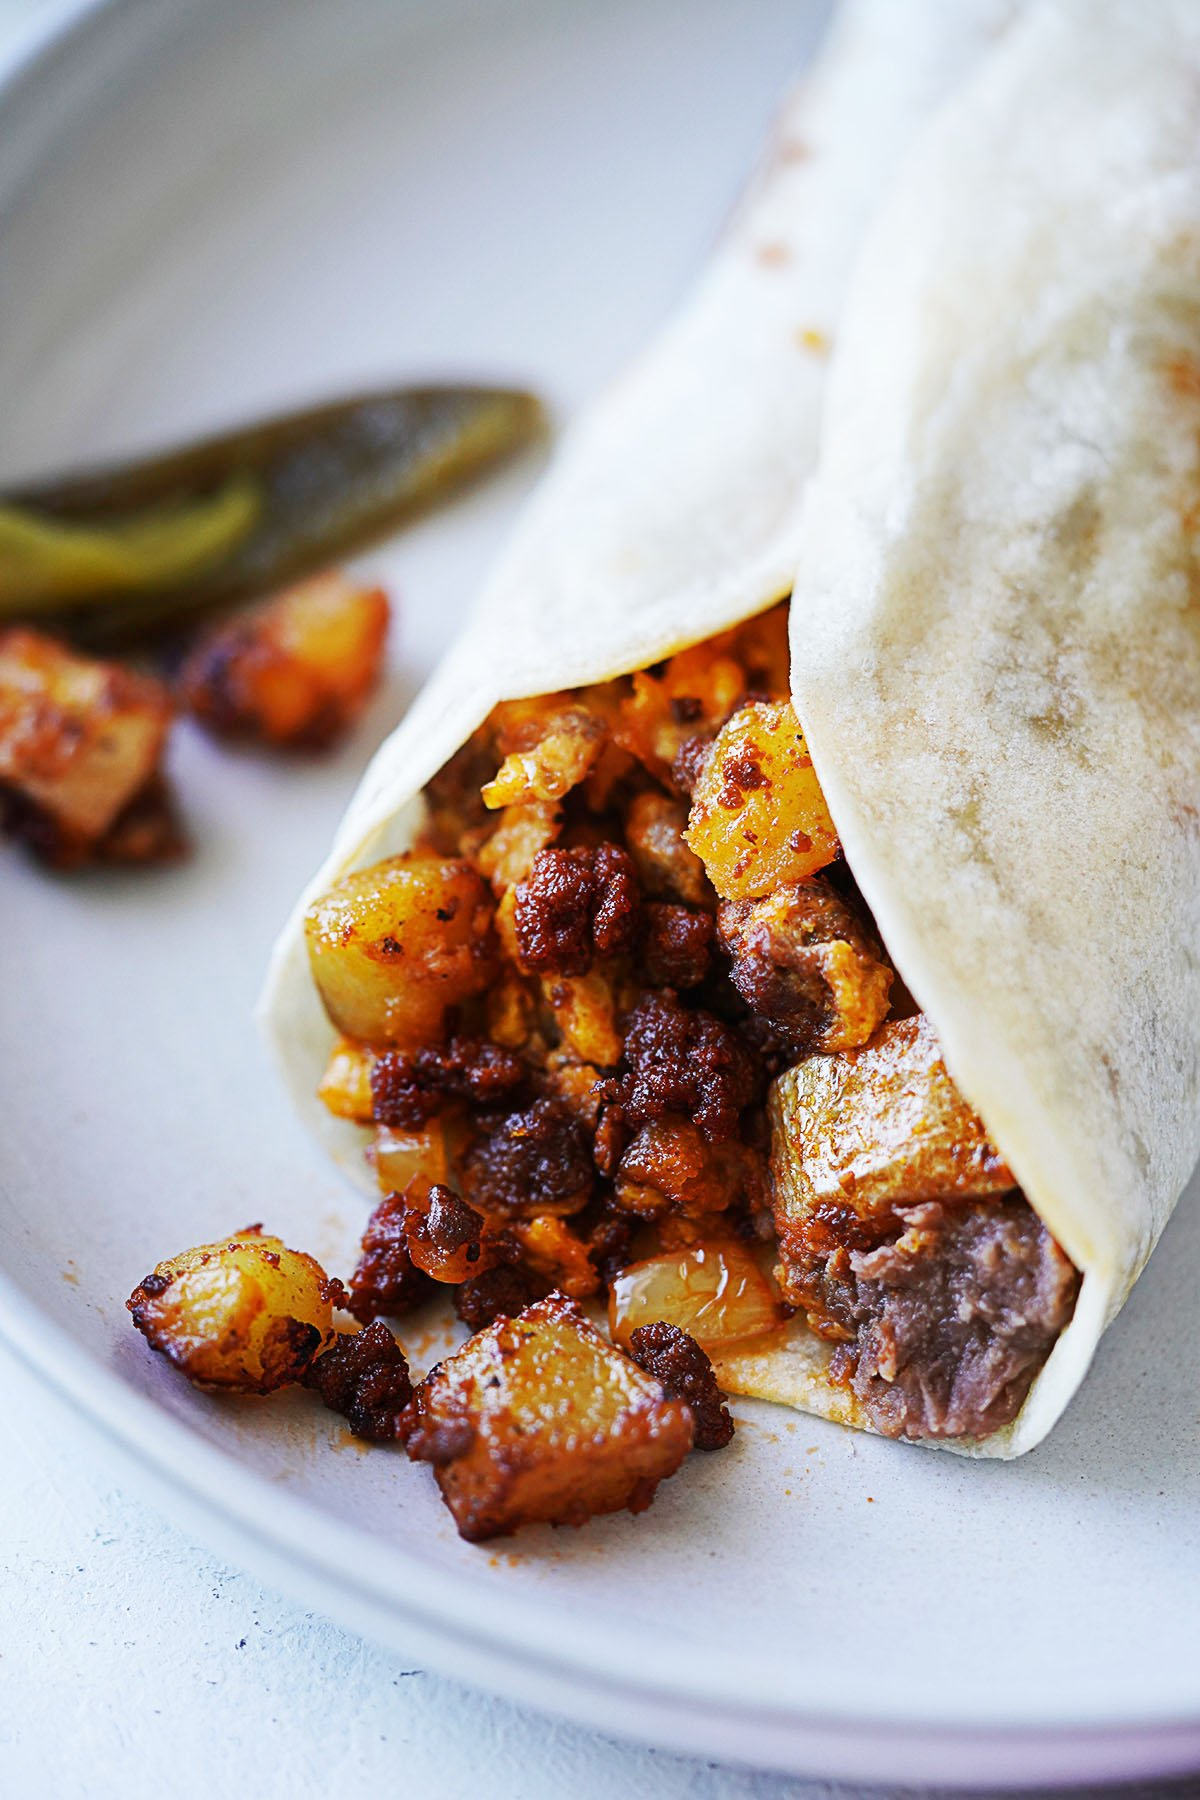 a burrito made with chorizo and potatoes and a little refried beans.